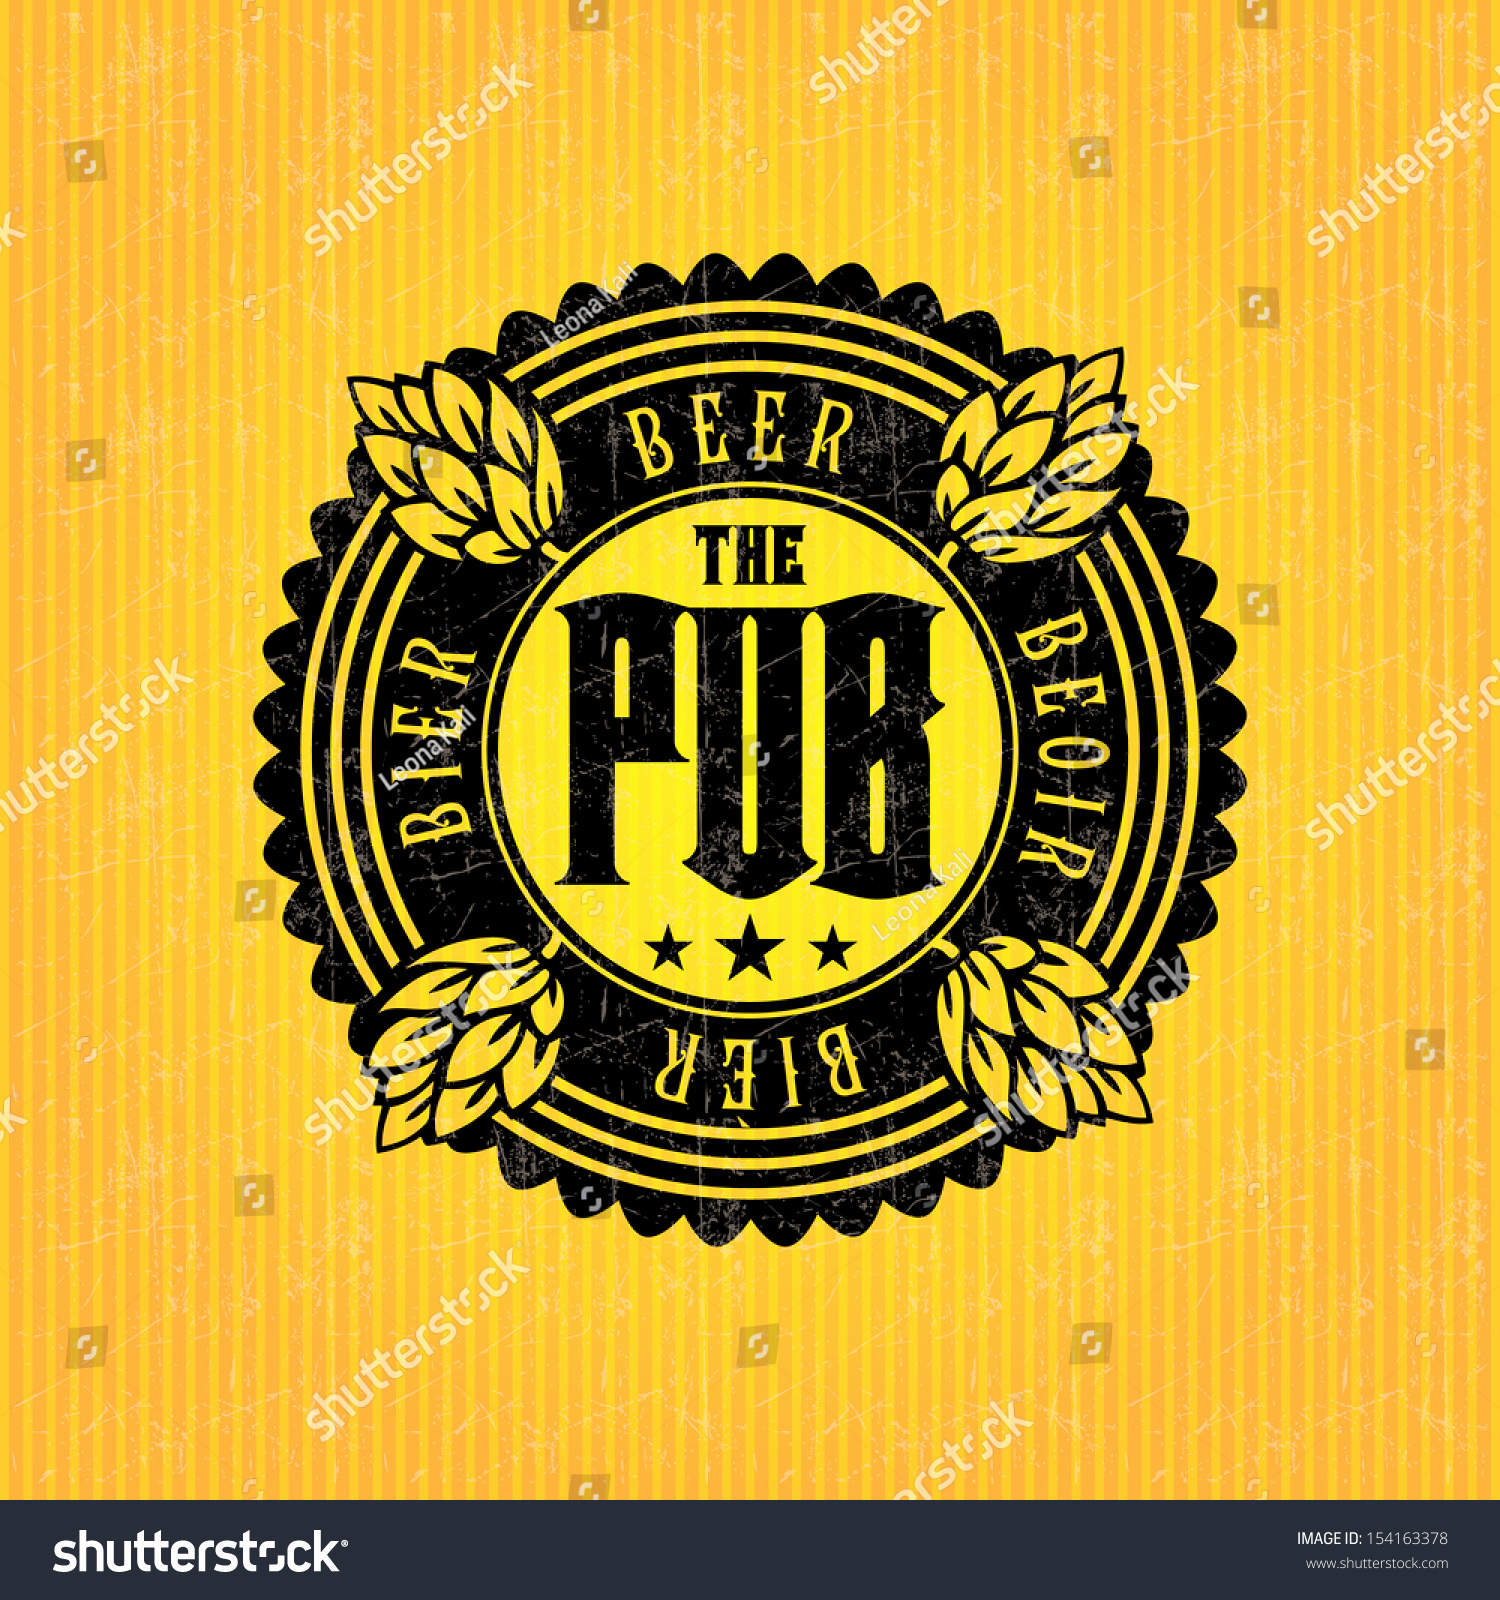 Beer Label Design Template Lovely Beer Label Design Template Stock Vector